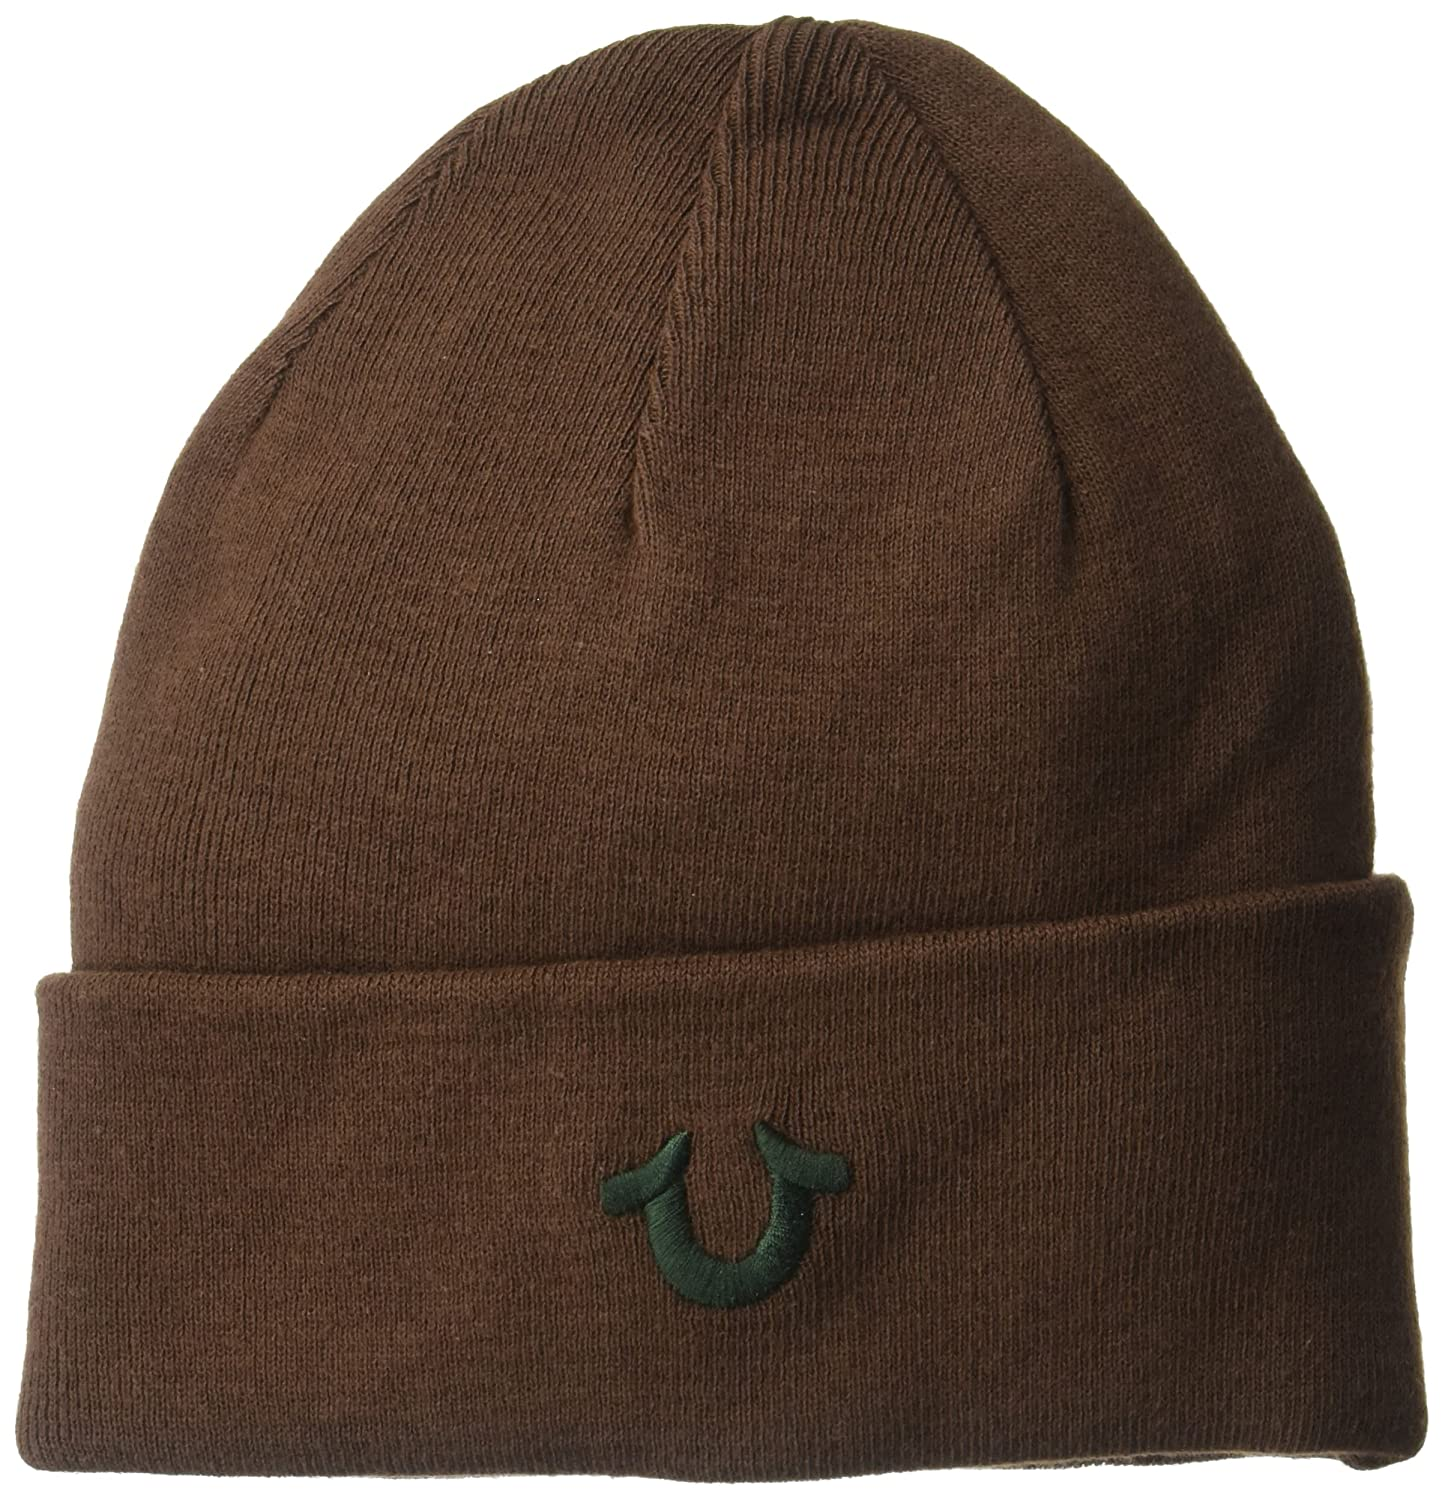 4d14bcd7 True Religion Men's Cotton Watchcap Beanie Hat, Brown/Green, One Size:  Amazon.co.uk: Clothing